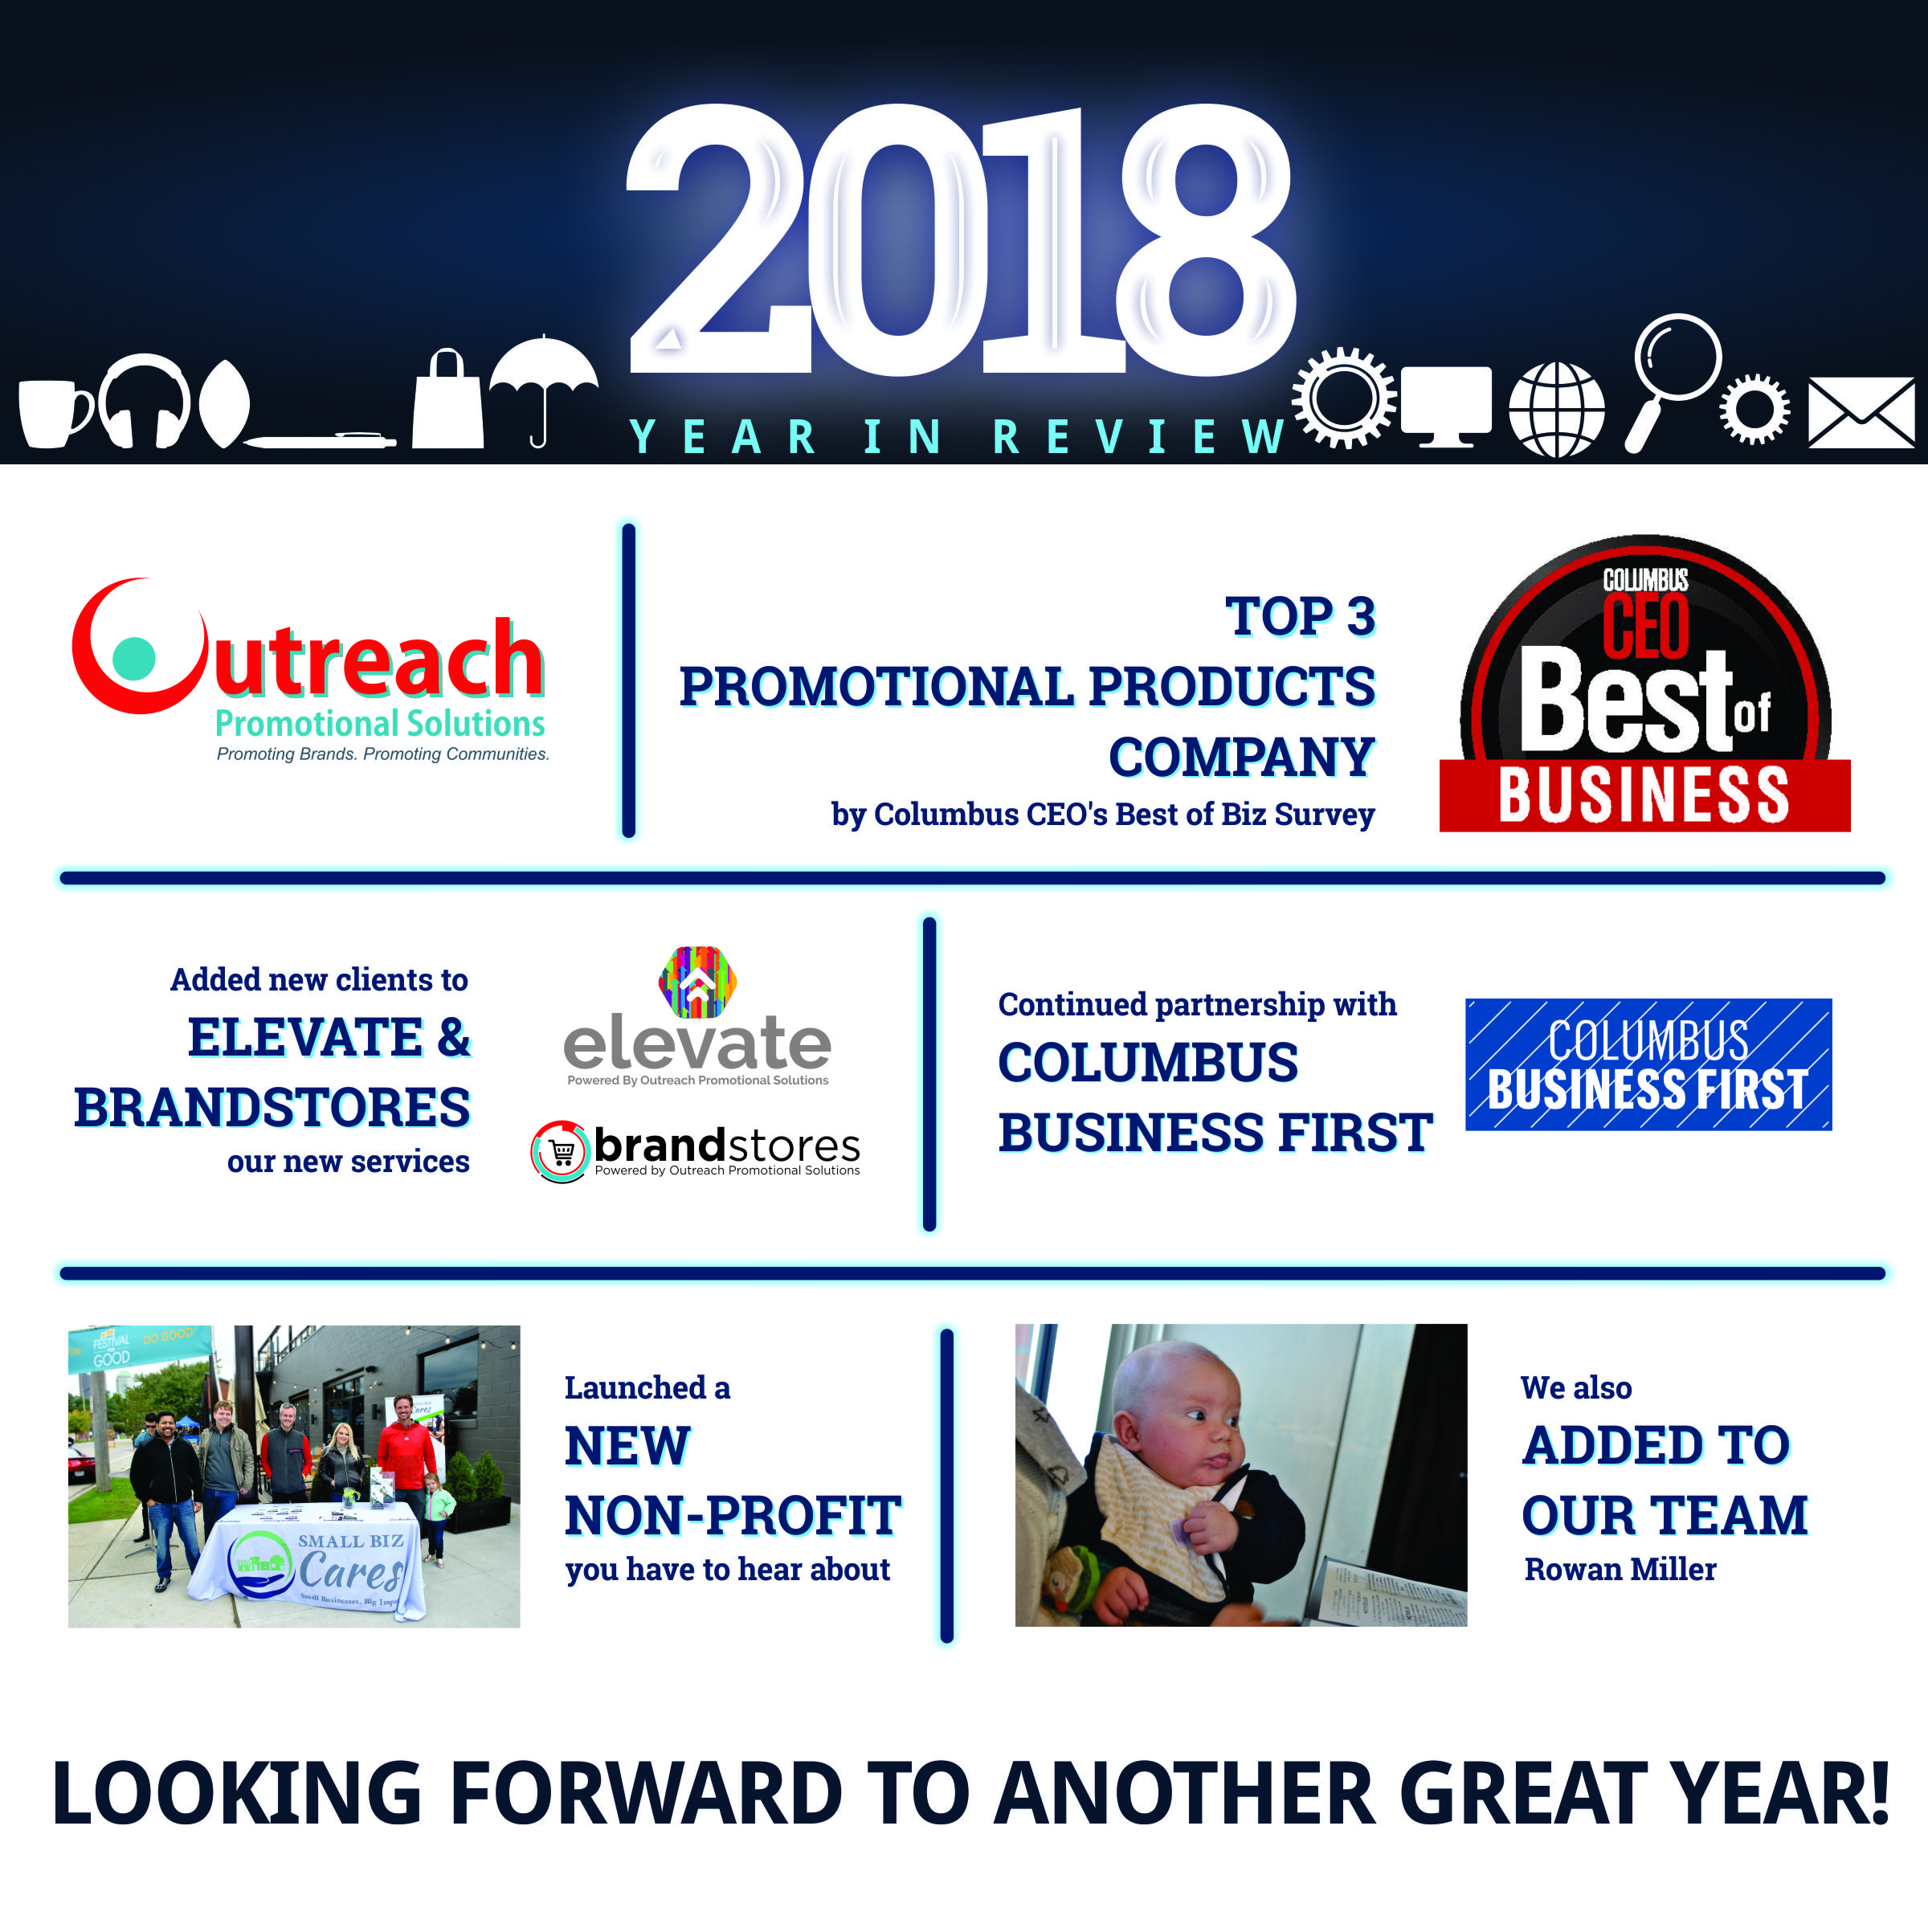 2018 Year In Review Outreach Promotional Solutions